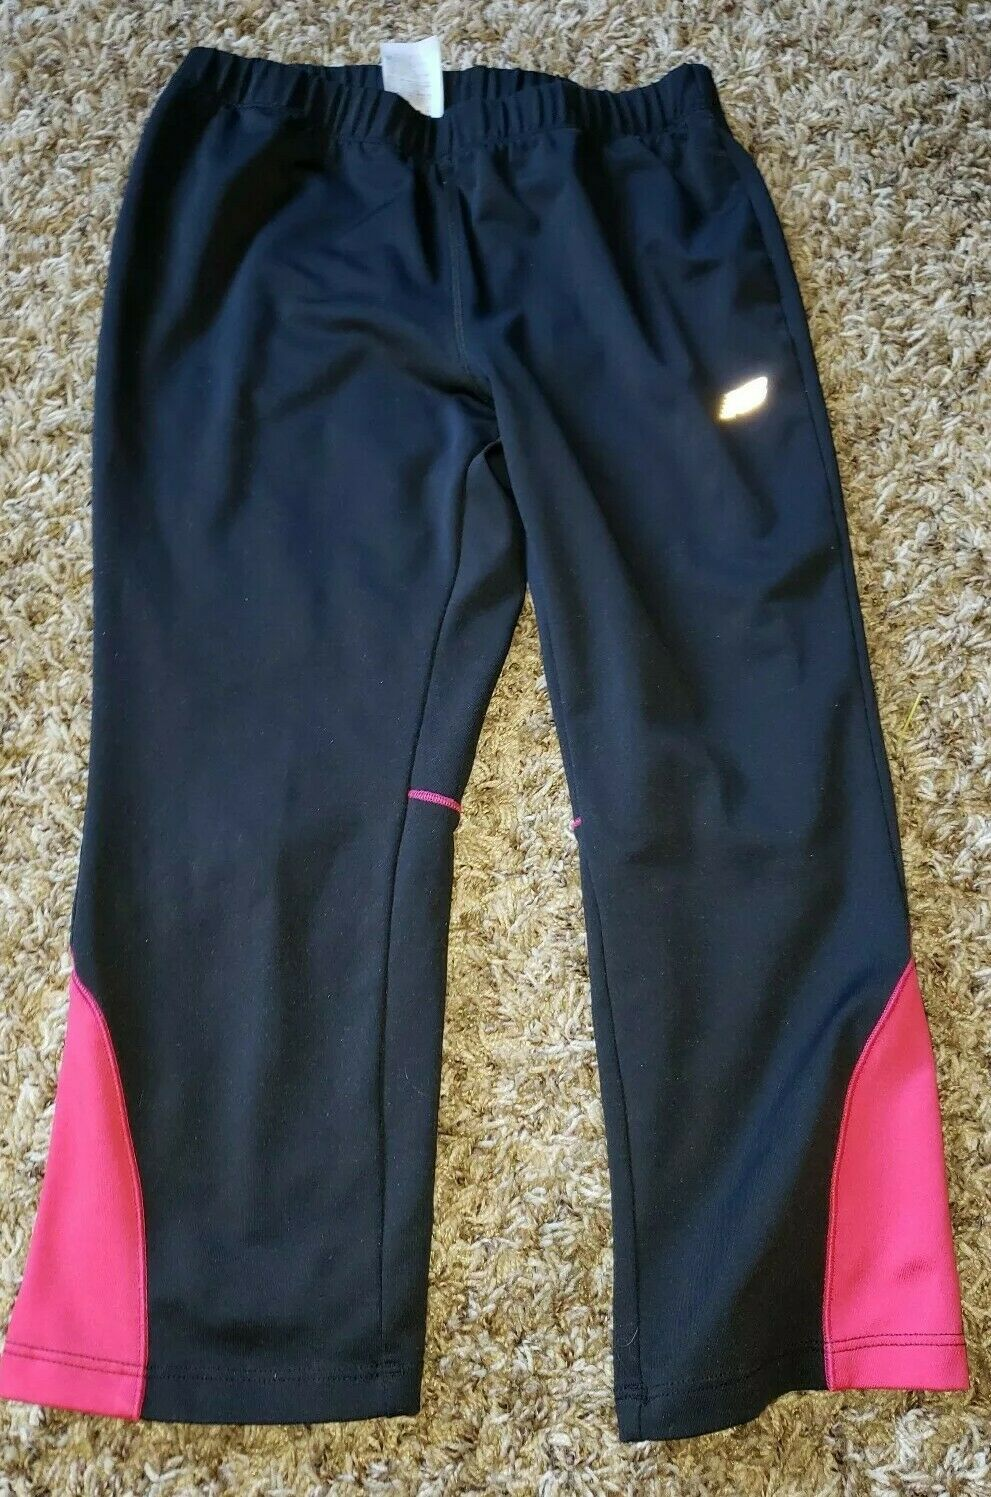 New Balance Black and pink Capri Activewear Workout Wear Stretchy Material Sz L